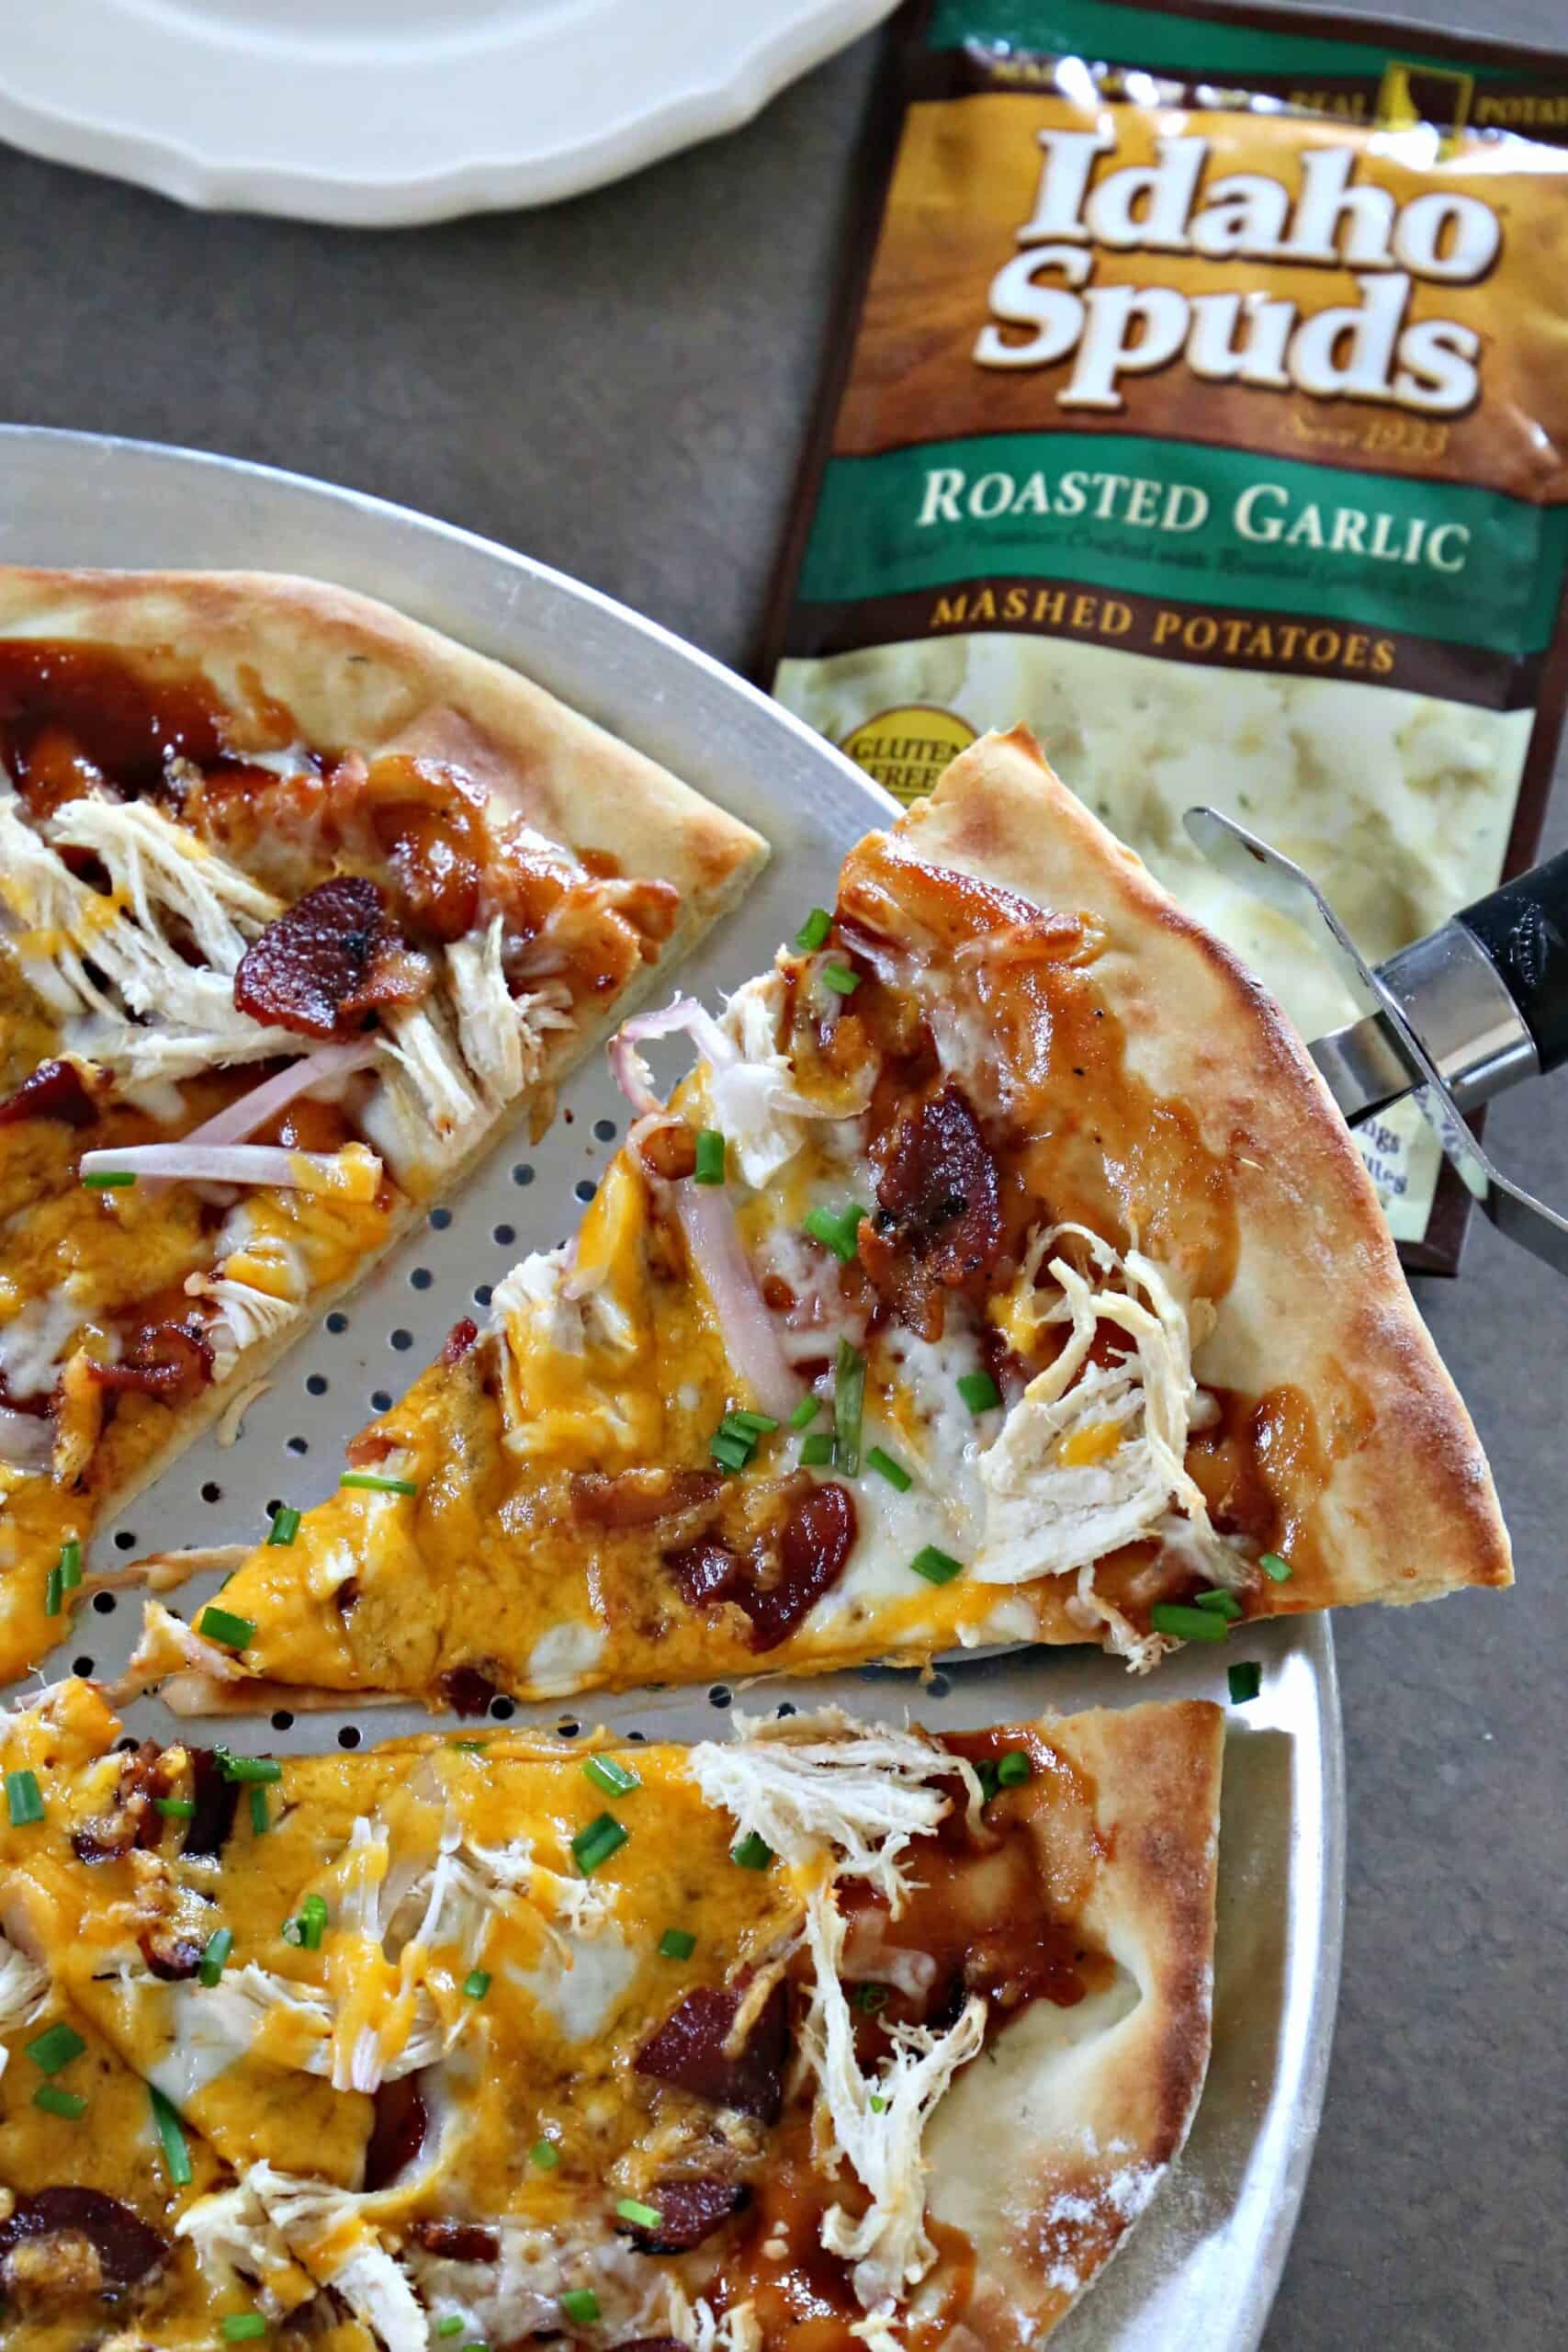 Looking for a tasty pizza recipe?  Here it is.  Made with a packet of Idaho Spuds, this Loaded BBQ Chicken Baked Potato PIZZA recipe just might change the way you make pizza from now on. #BigFlavor #CLVR